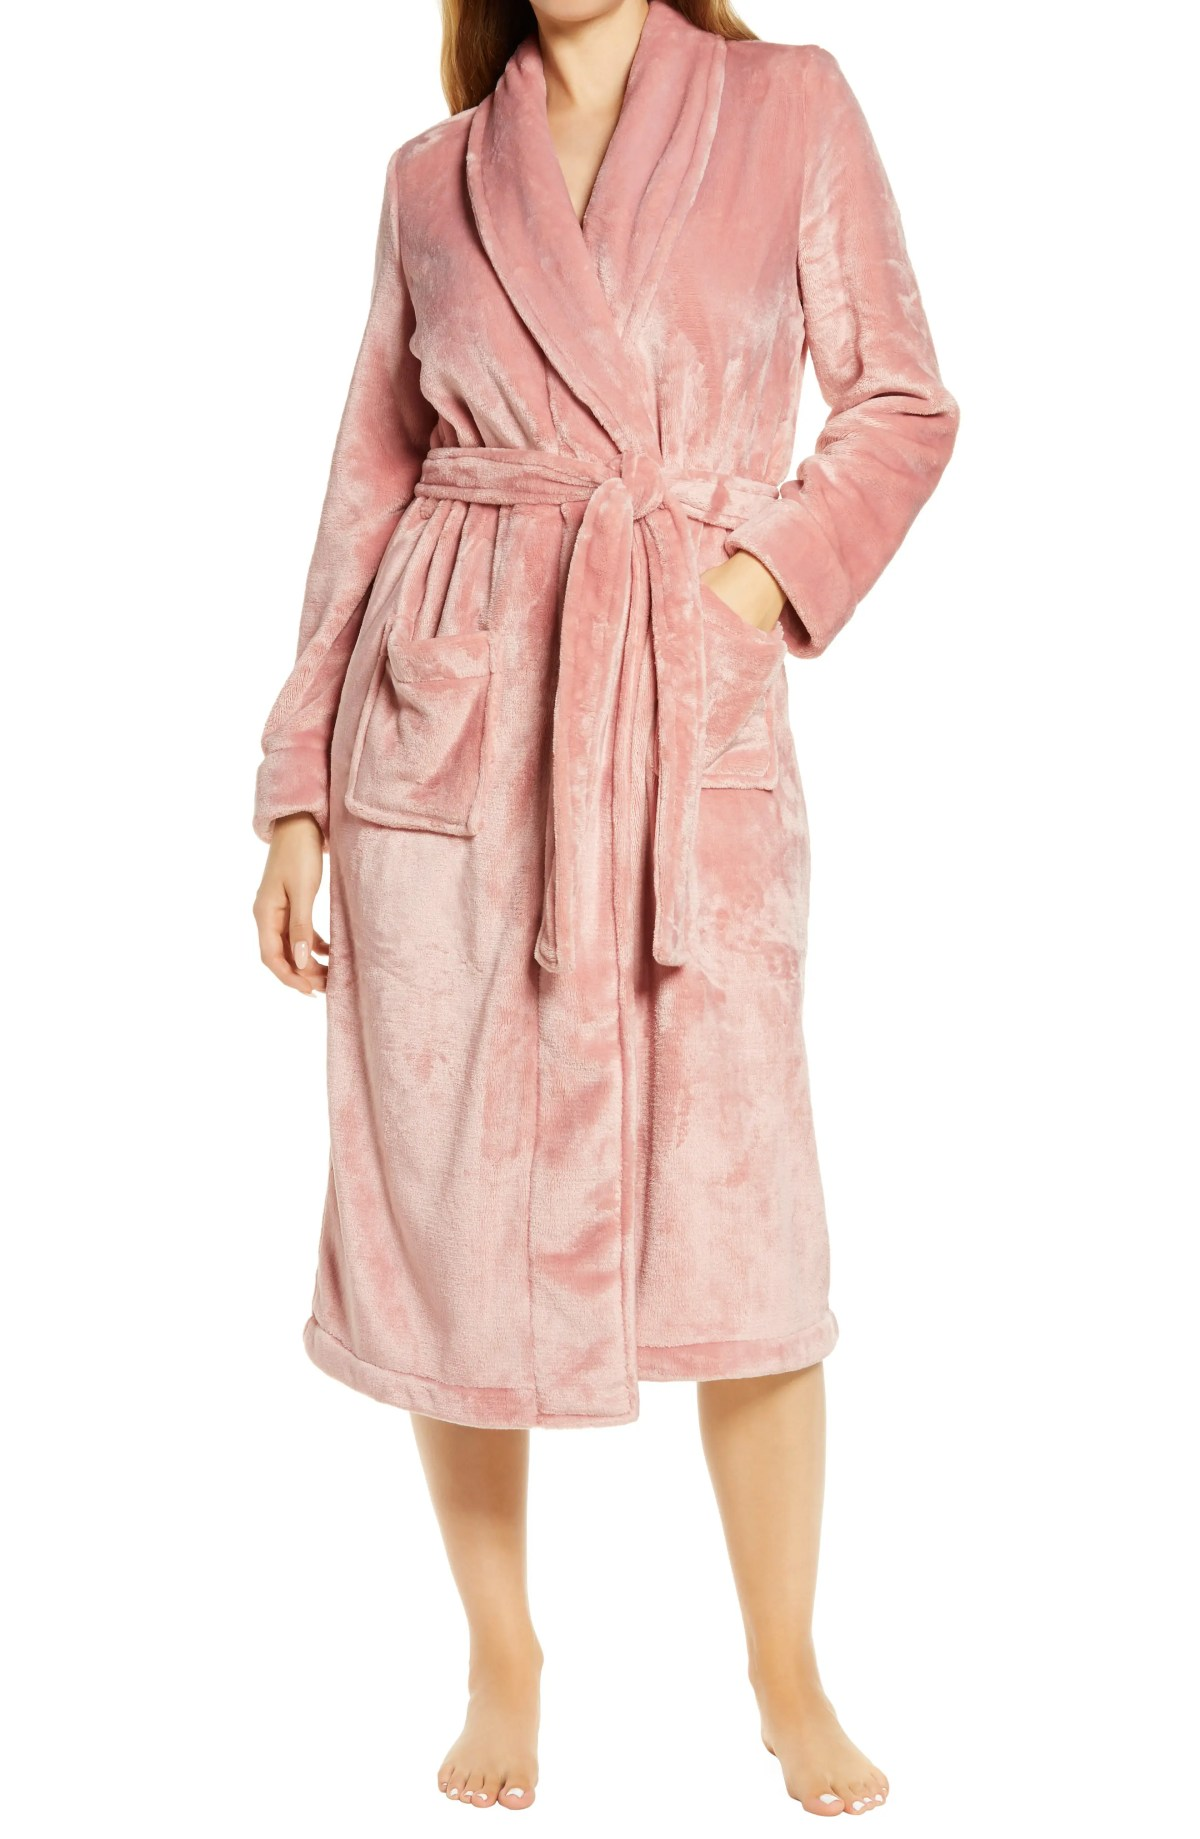 NORDSTROM Bliss Plush Robe, Main, color, PINK PUFF